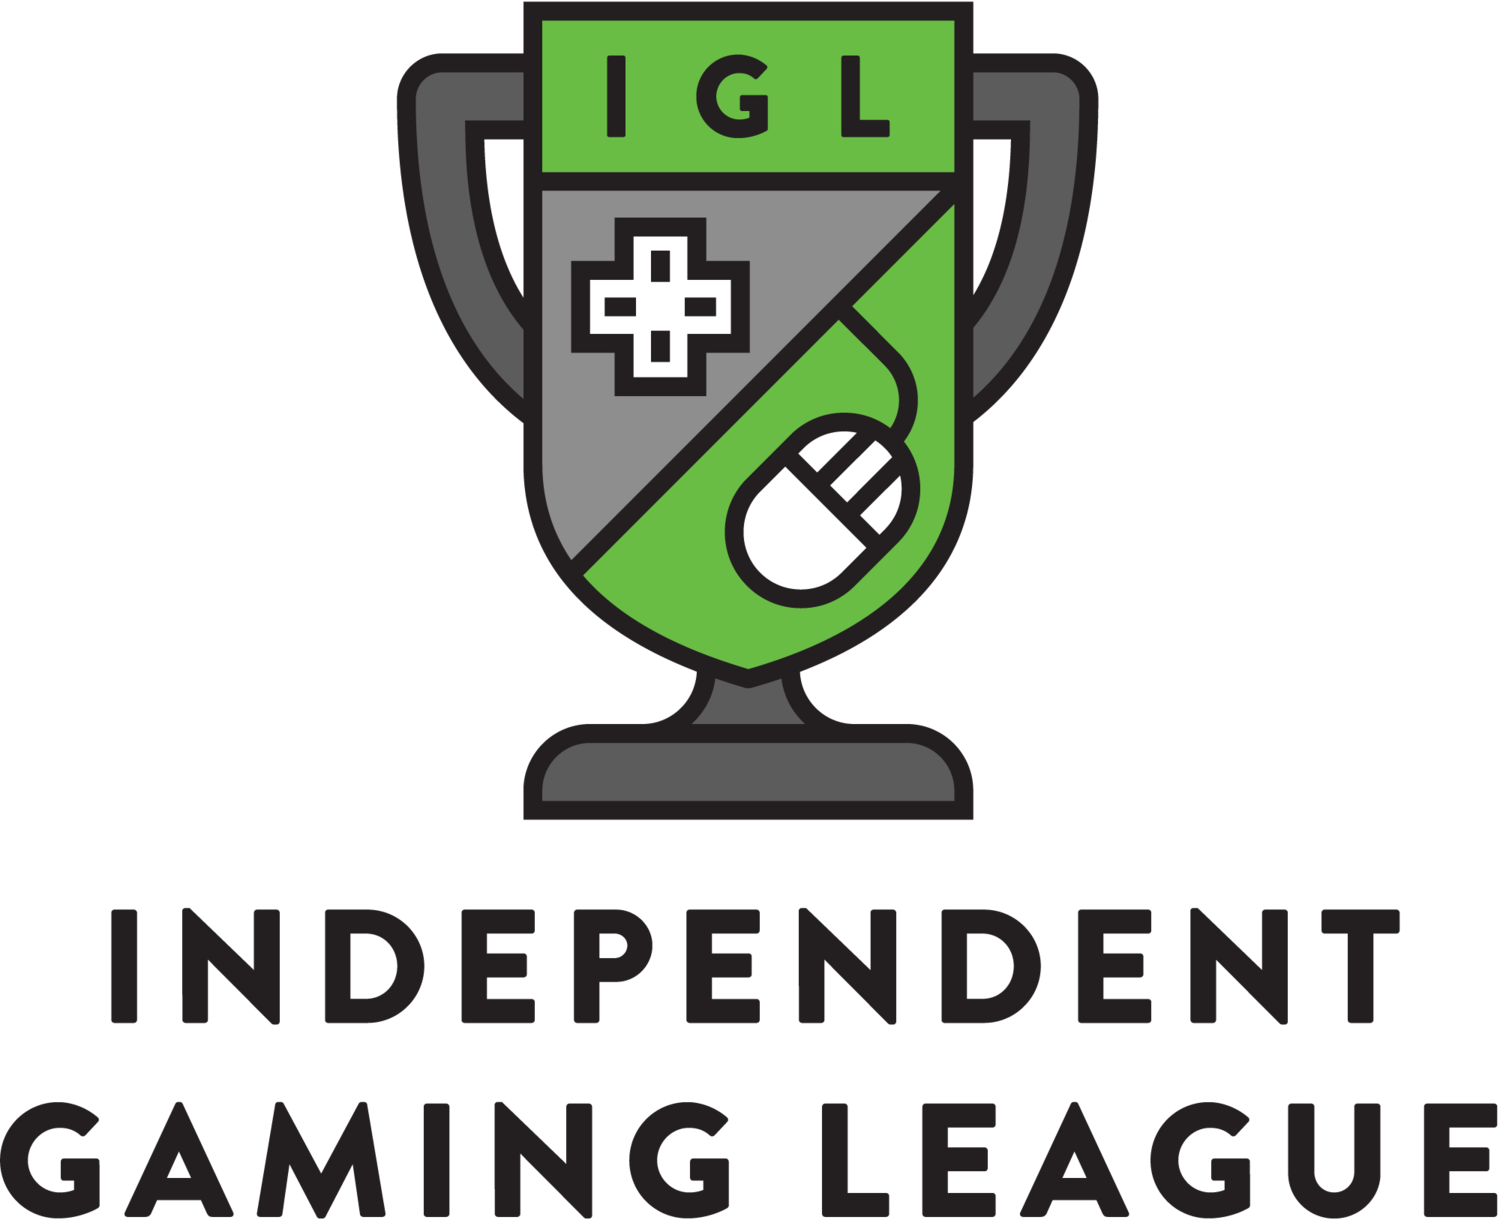 Independent Gaming League